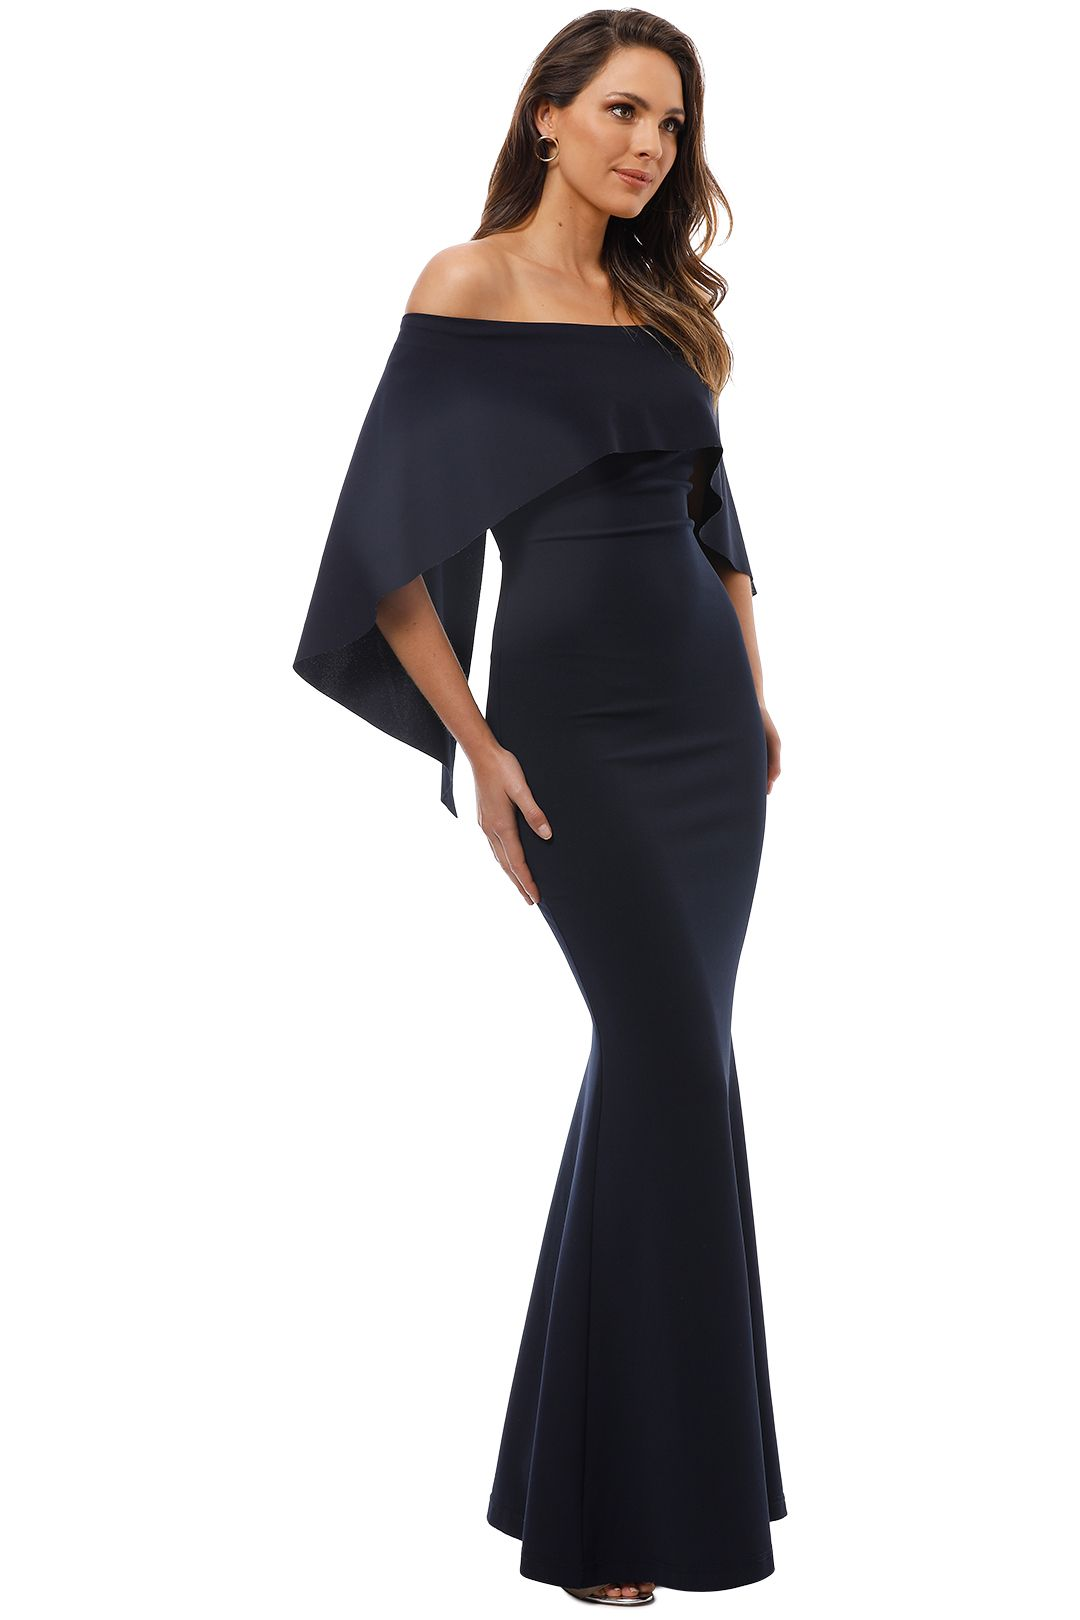 Pasduchas - Composure Gown - Navy - Side